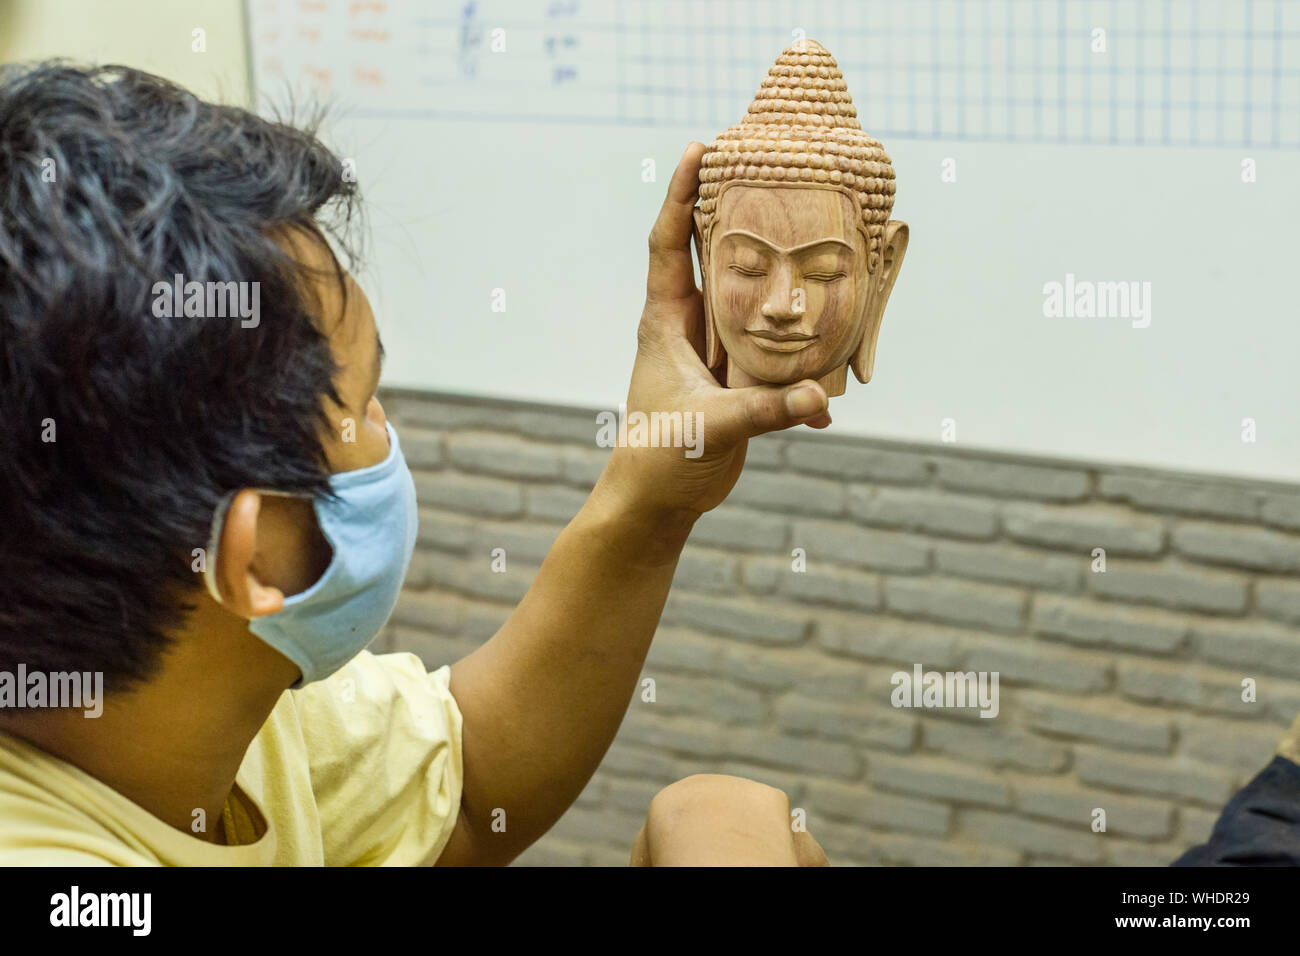 a sculptor of the Cambodian company of Angkor craftsmen cuts